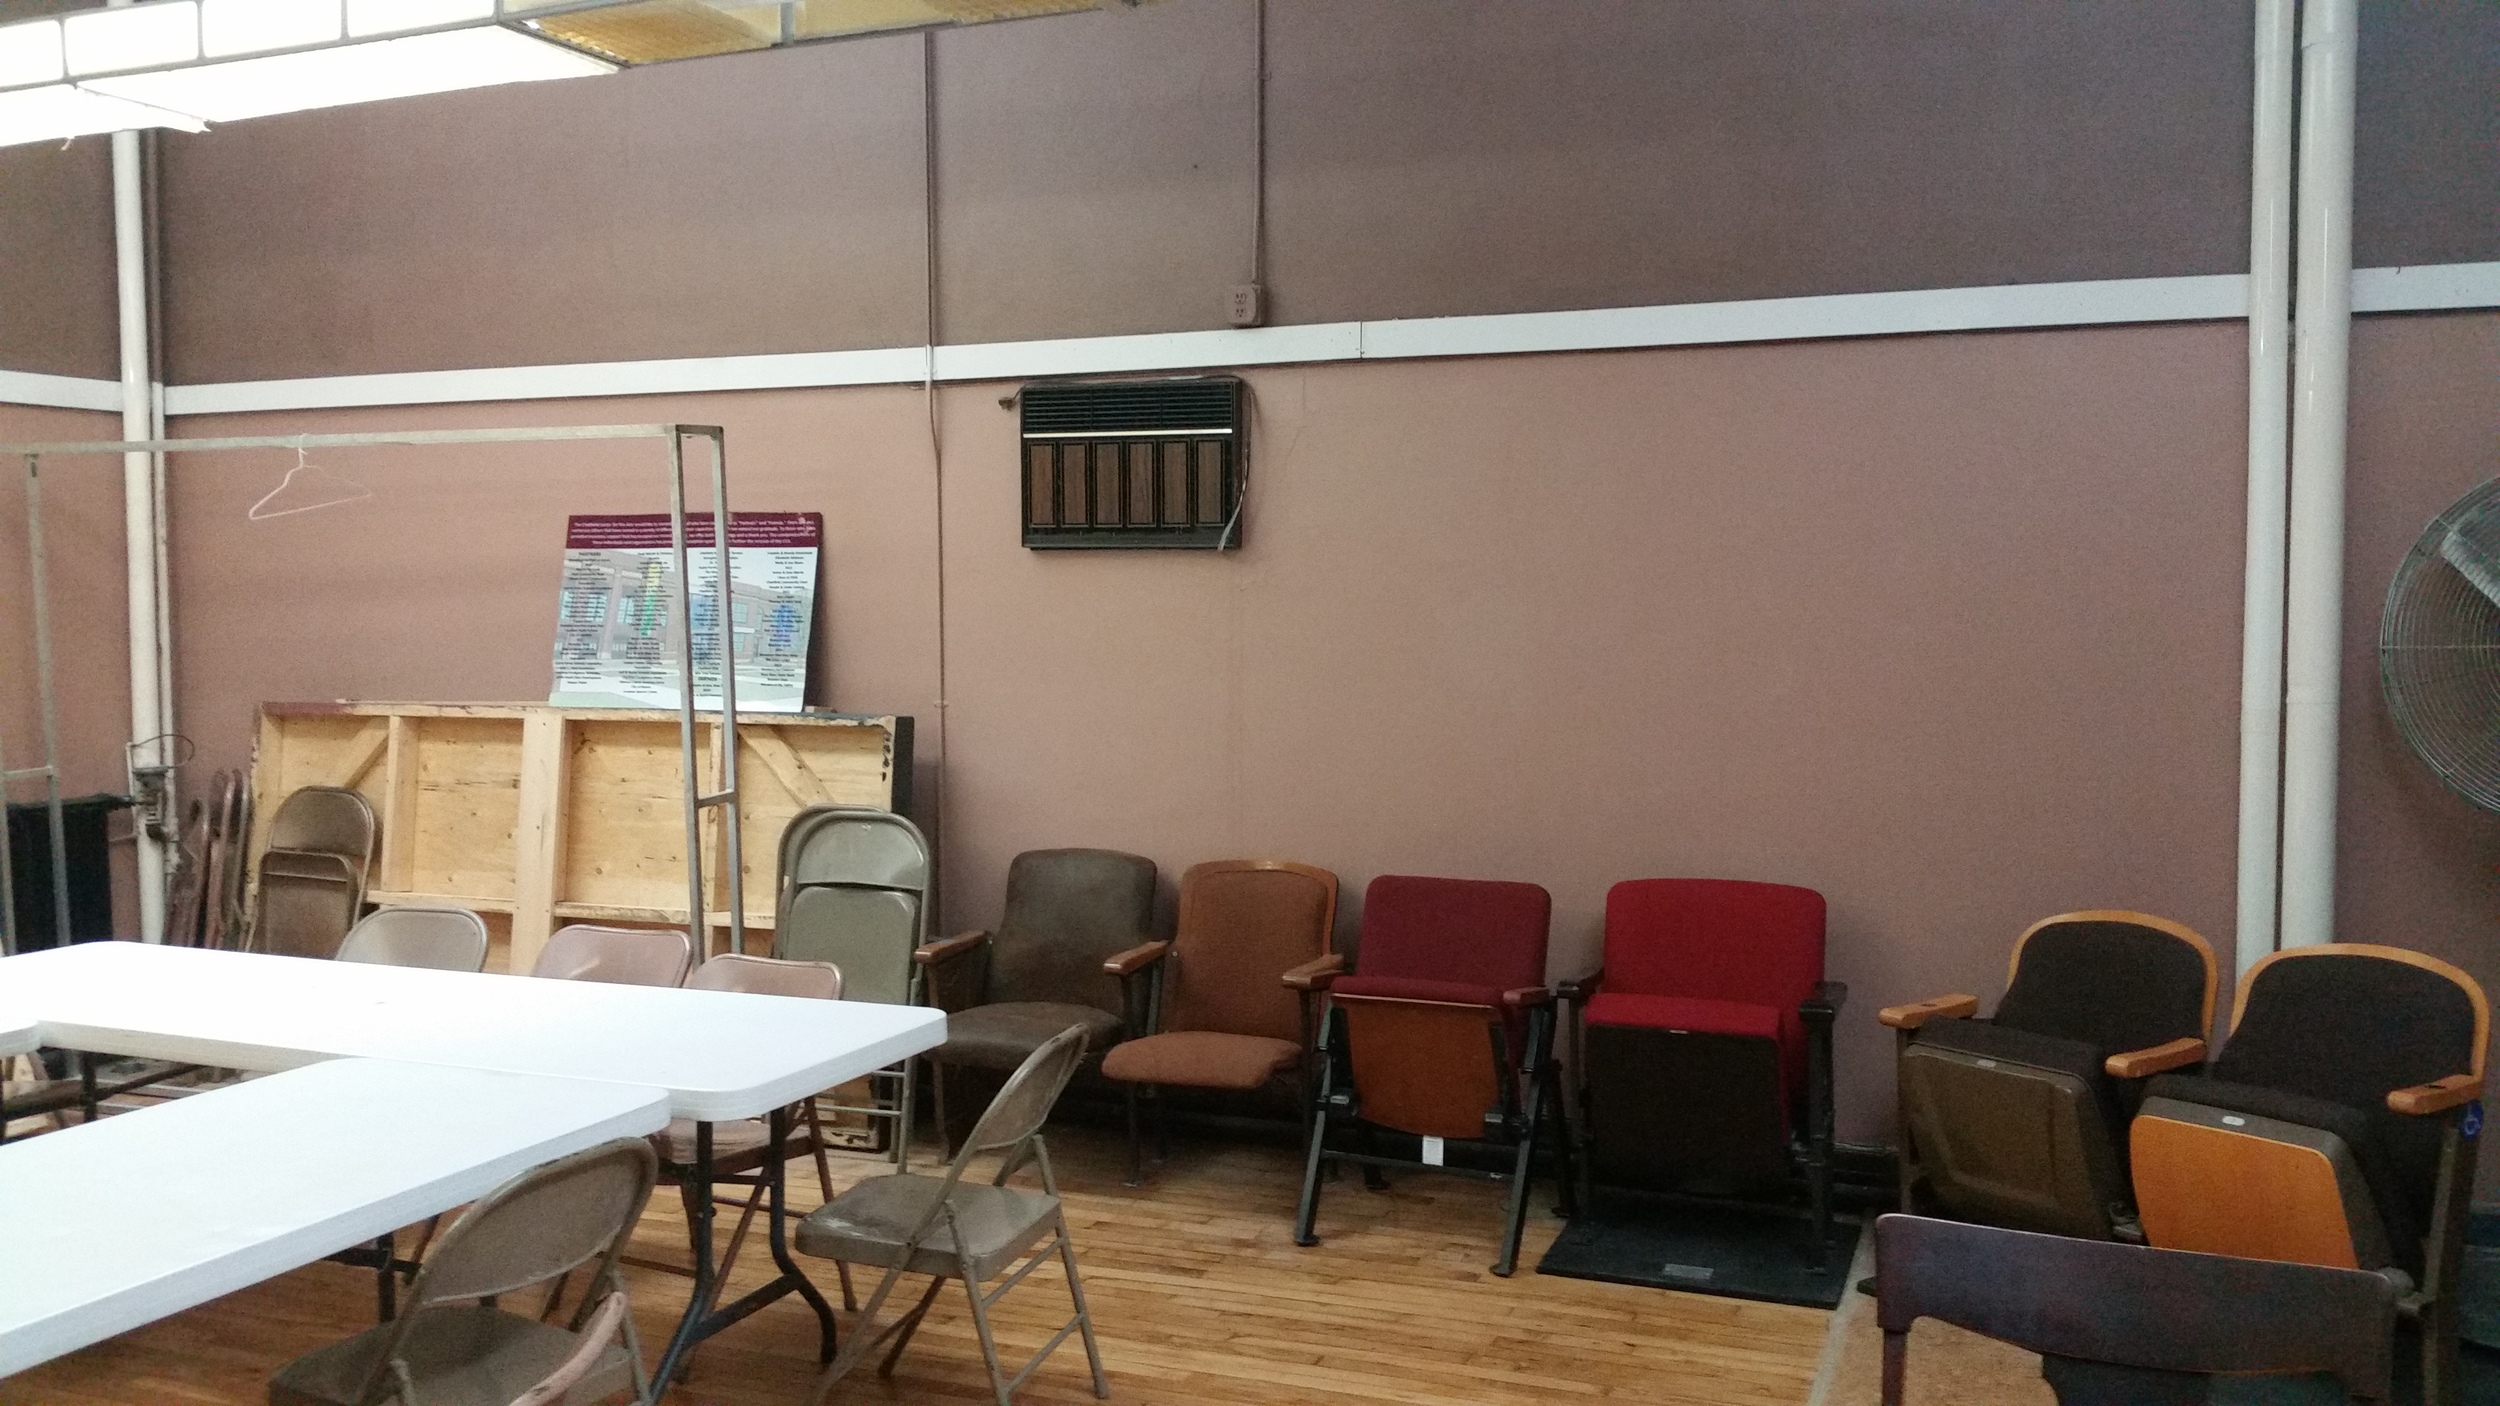 This is the future gallery space at Chatfield Center for the Arts